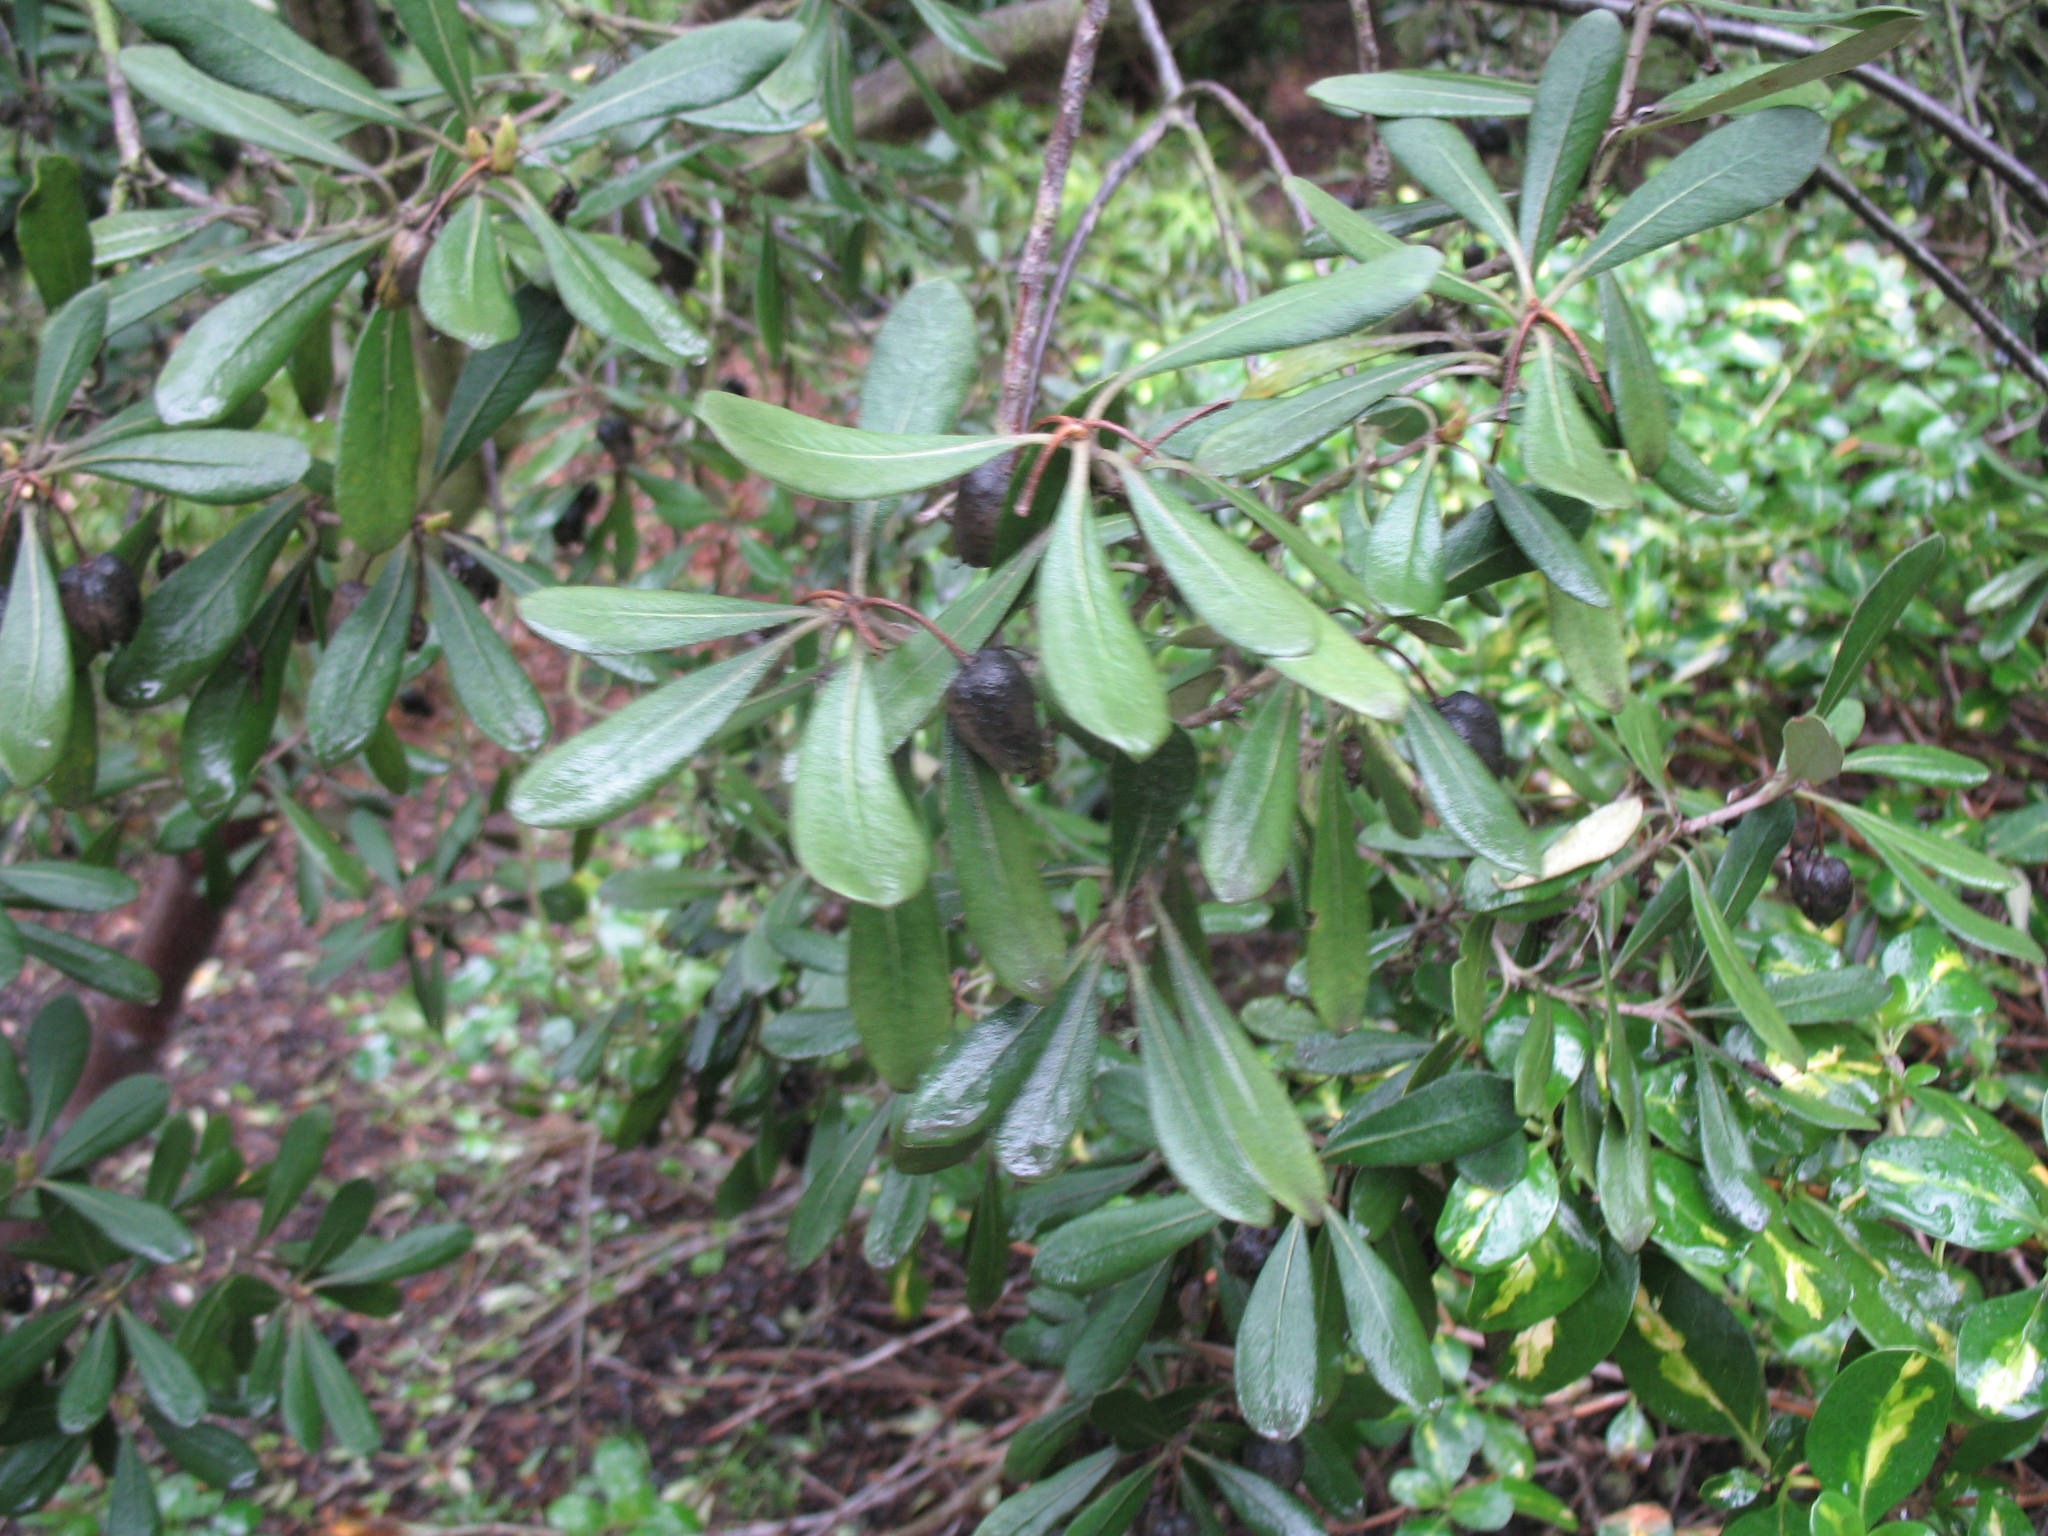 Pittosporum crassifolium / Pittosporum crassifolium